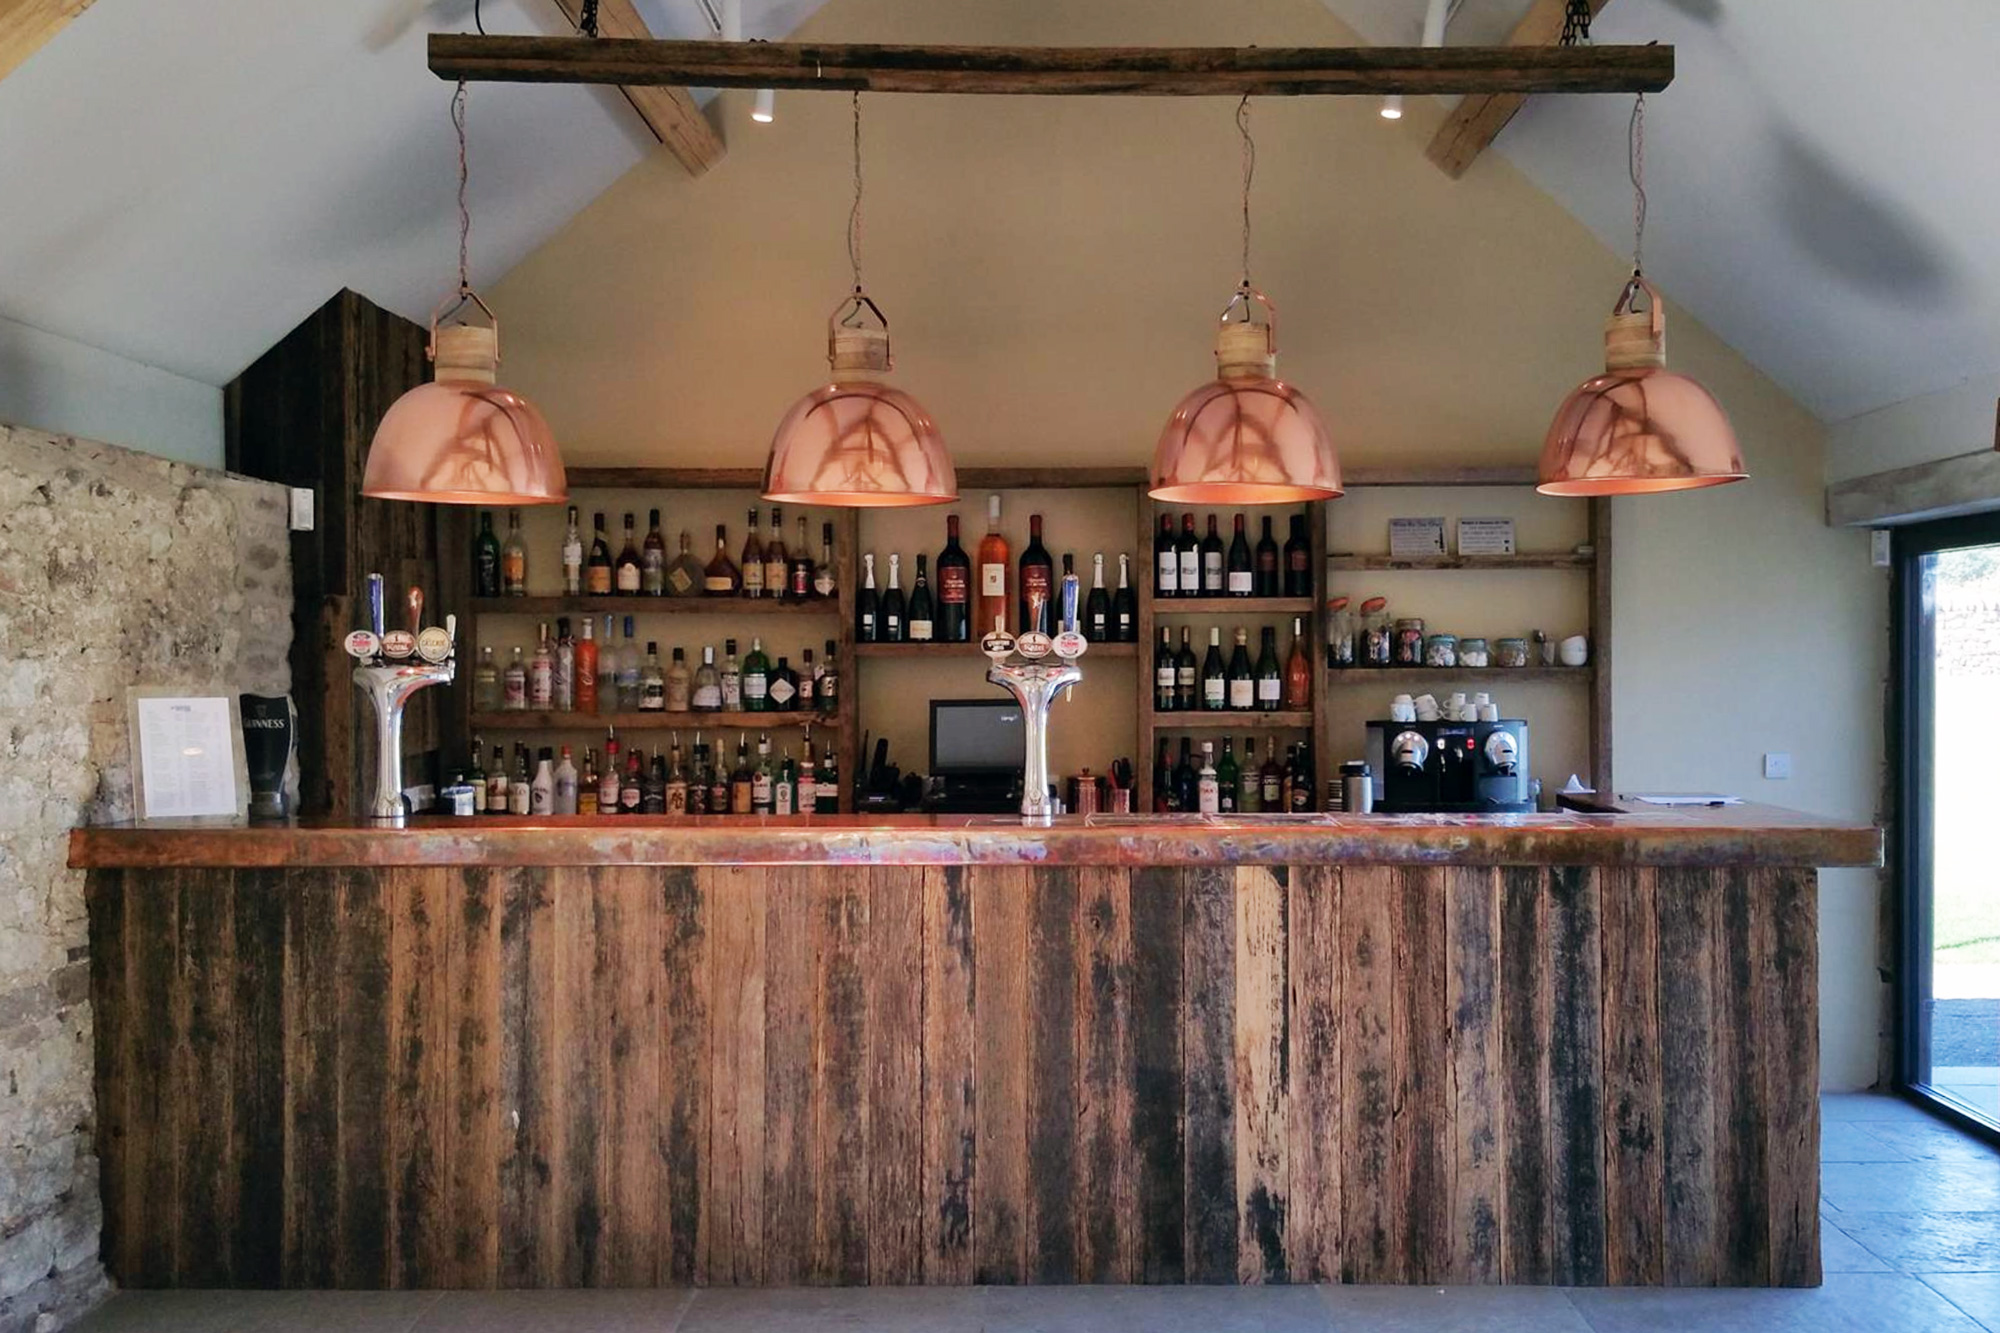 Reclaimed wood bar with large copper pendant lights above